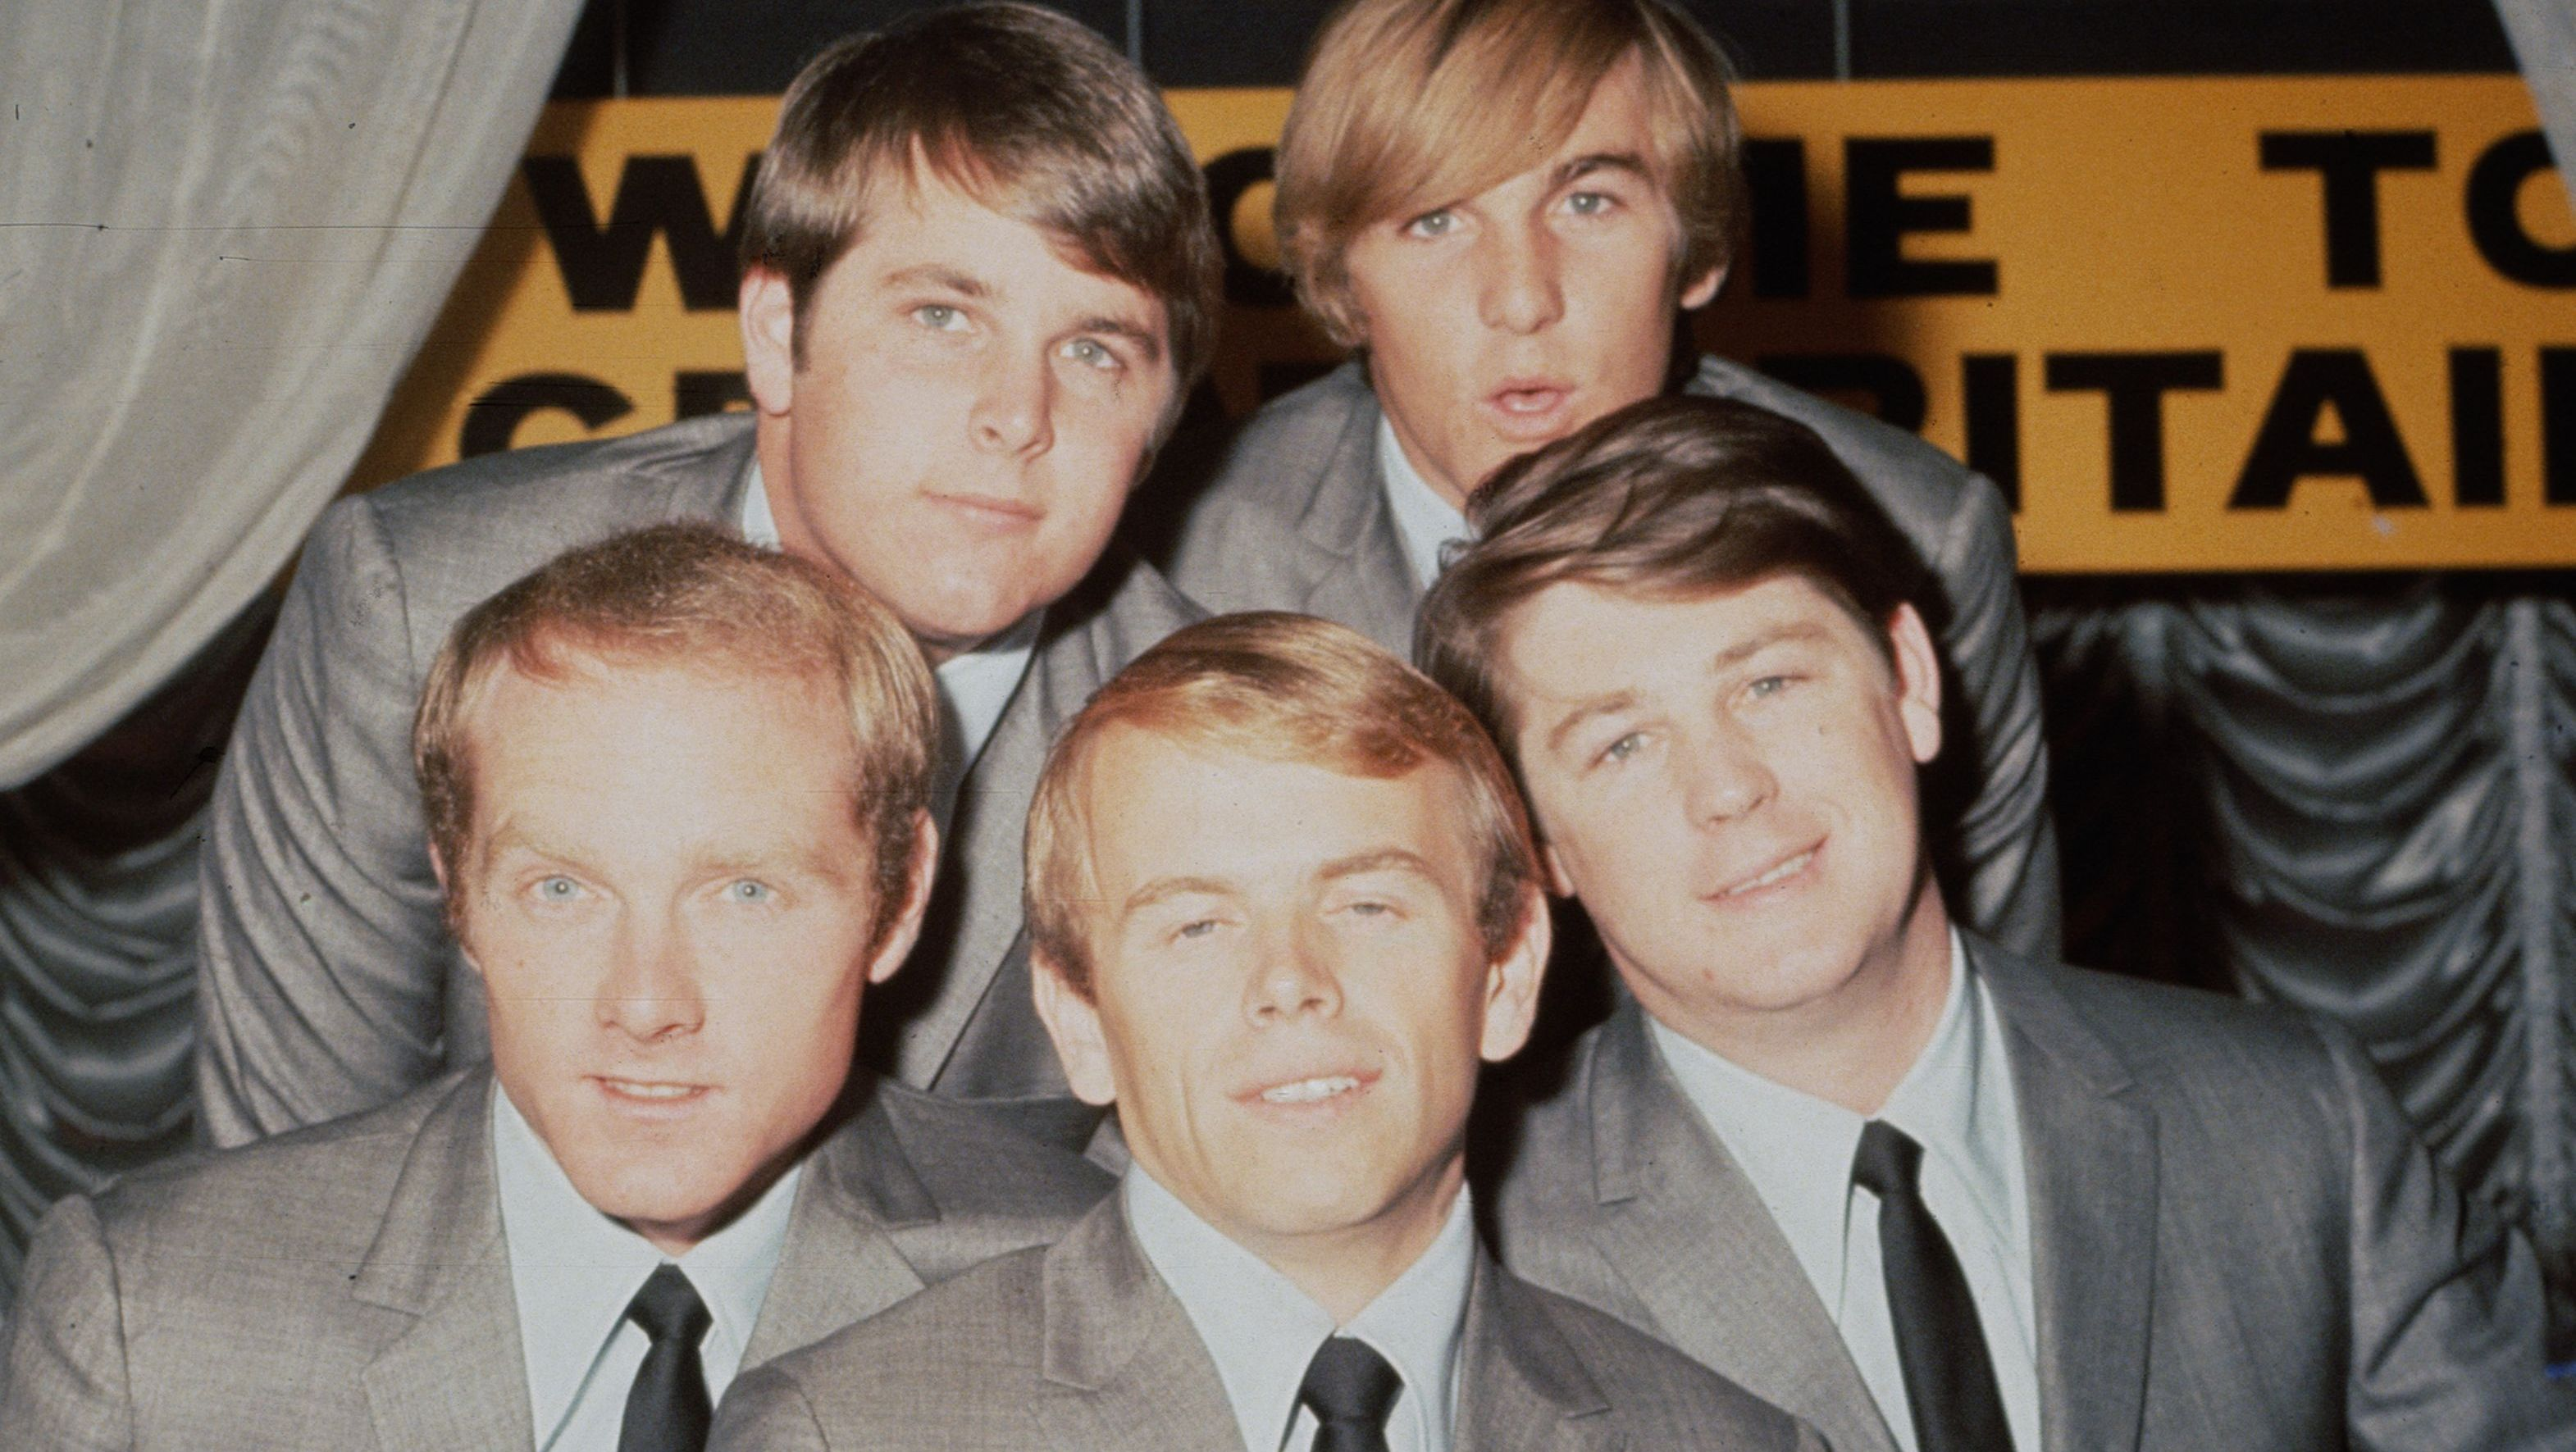 A Nostalgic 226 But Bumpy 226 Journey With The Beach Boys